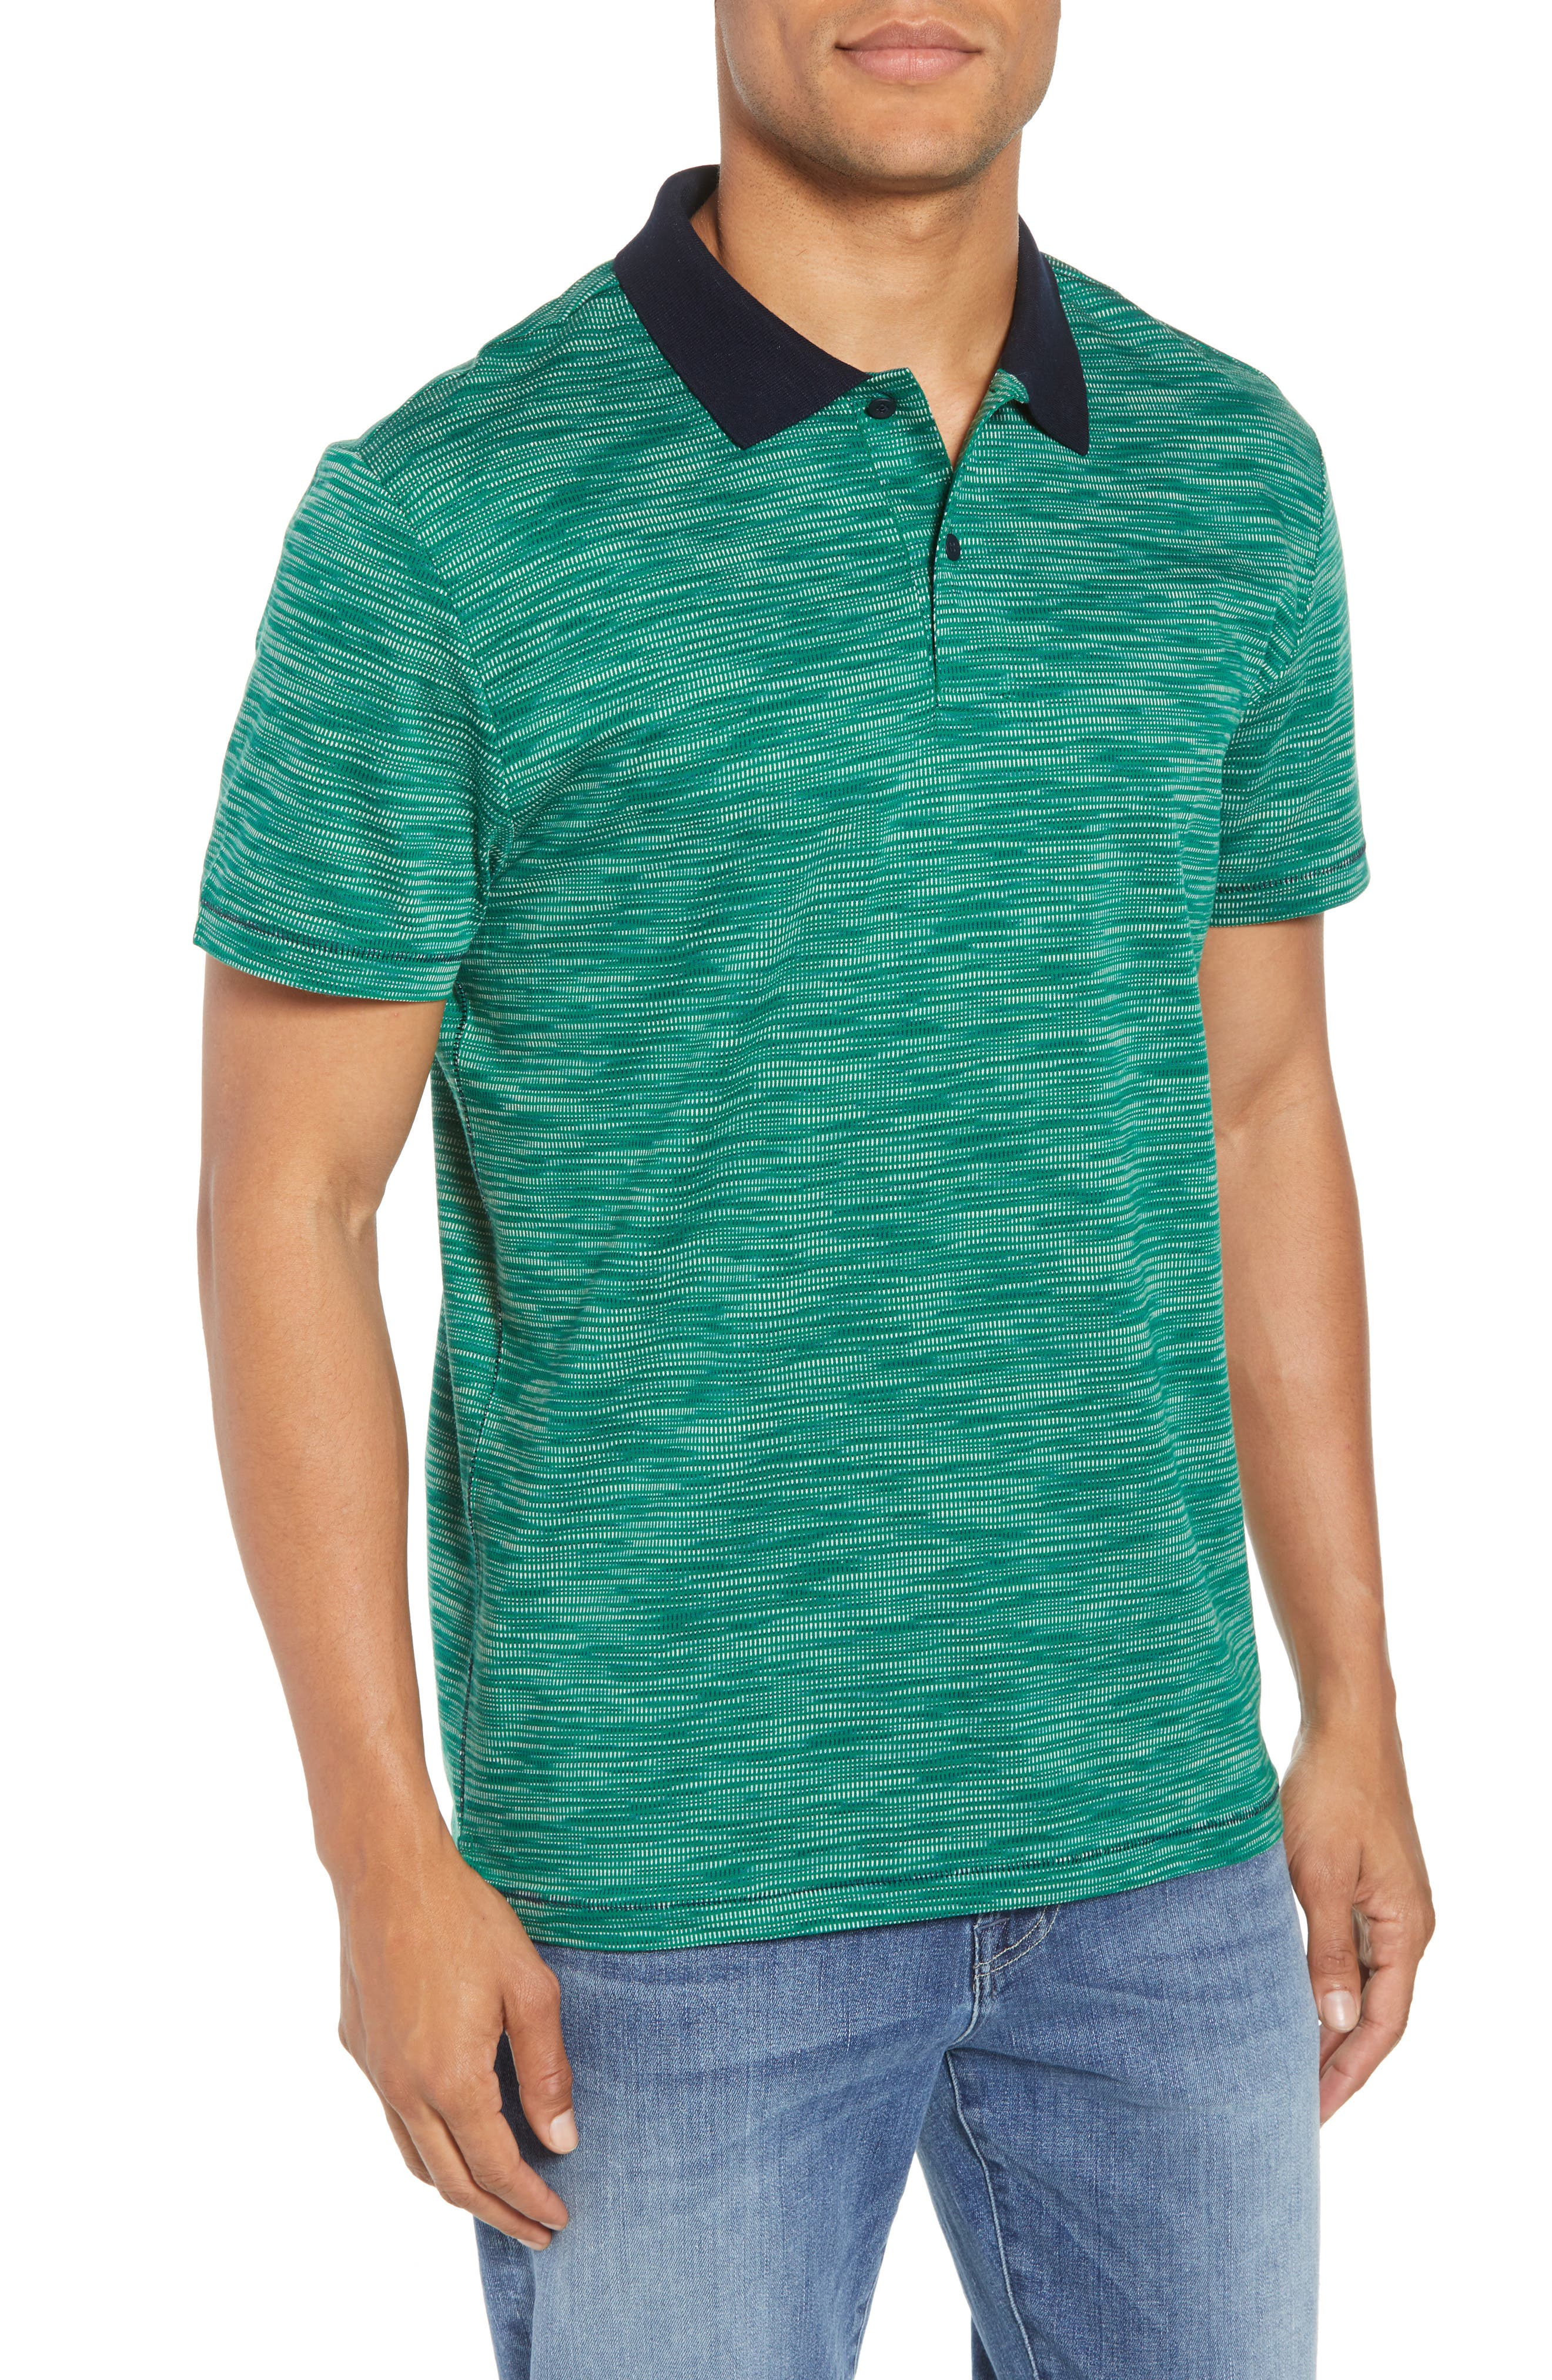 Tay Street Regular Fit Polo,                         Main,                         color, Emerald